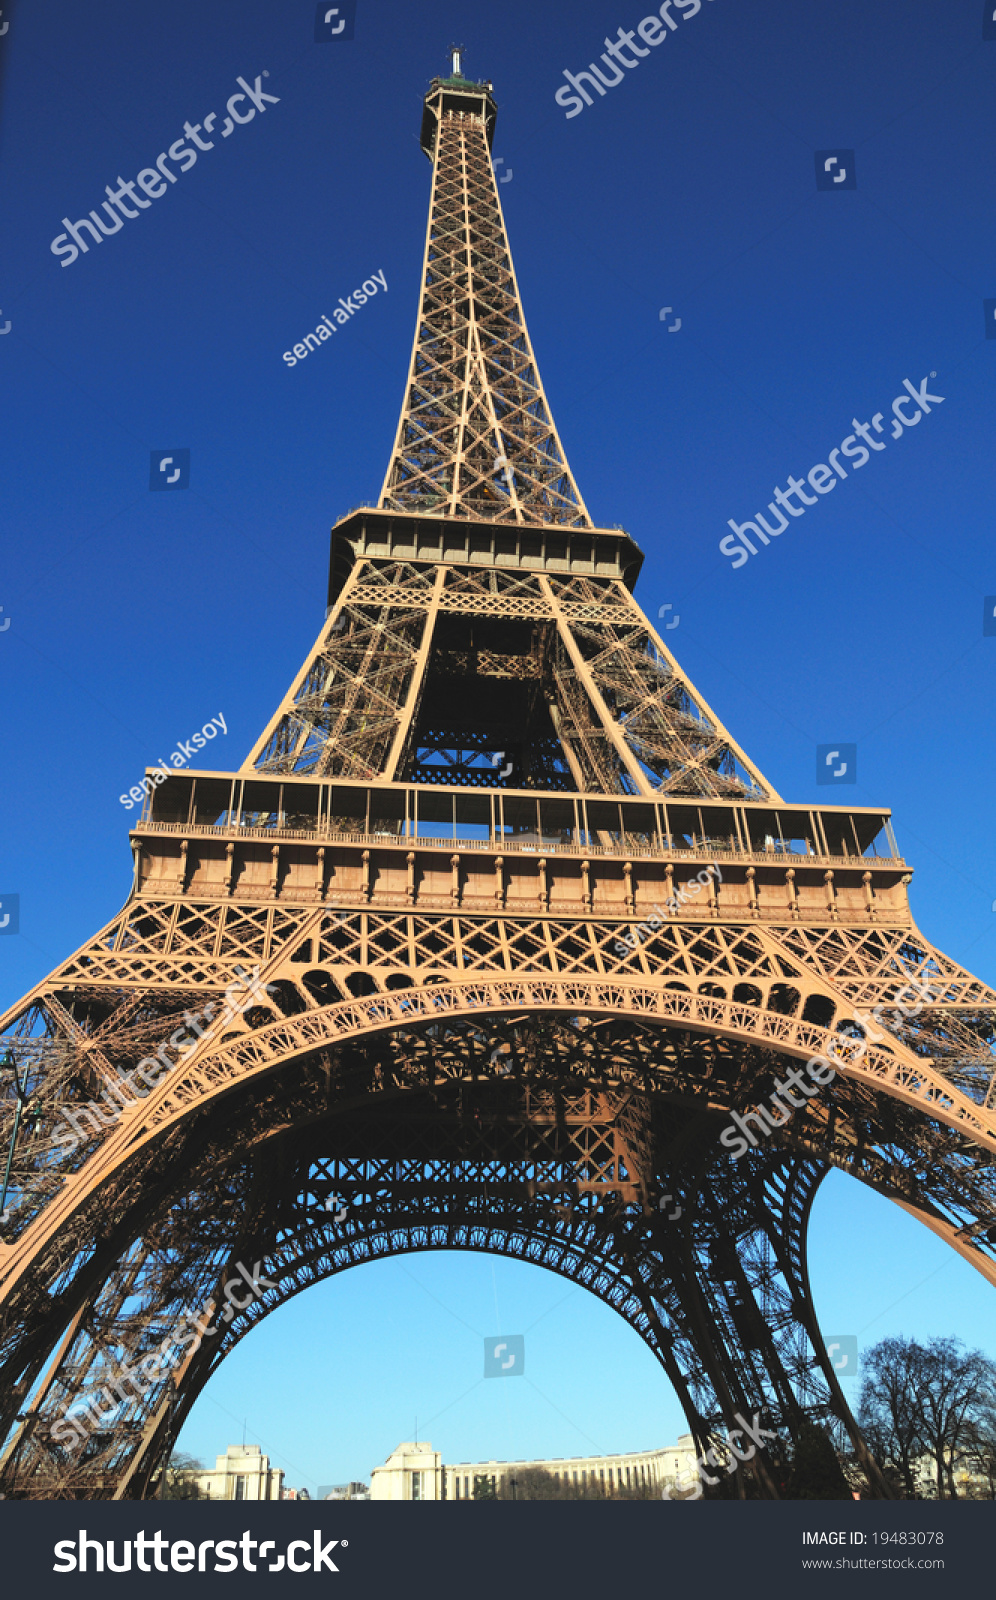 The Eiffel Tower Is An Iron Tower Built On The Champ De